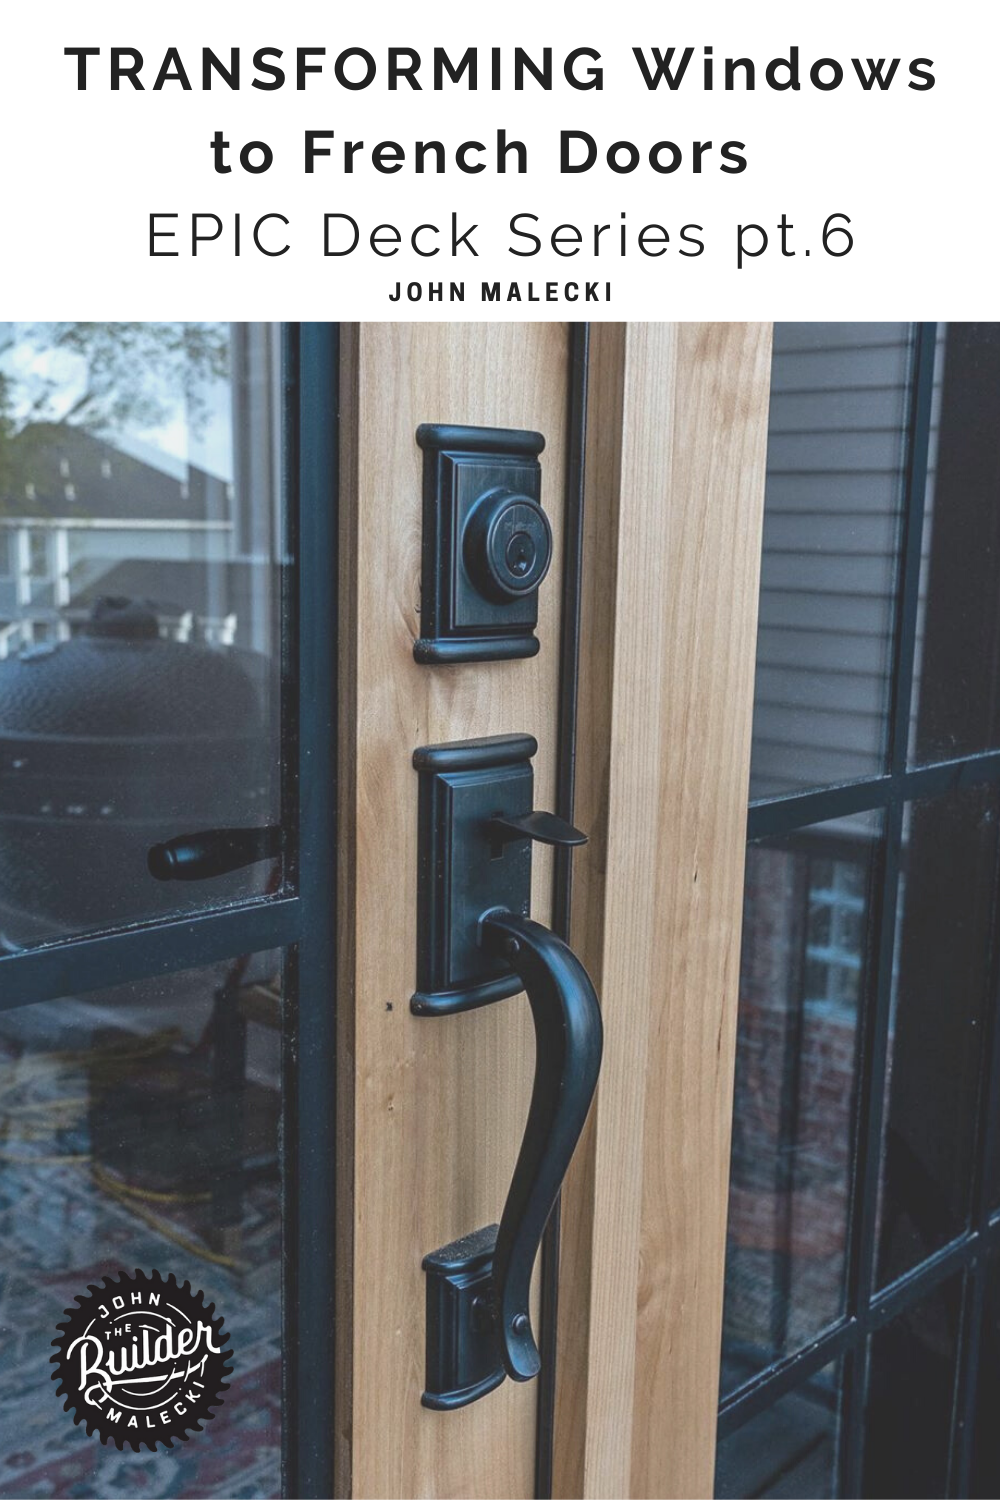 black door handle on wooden french door